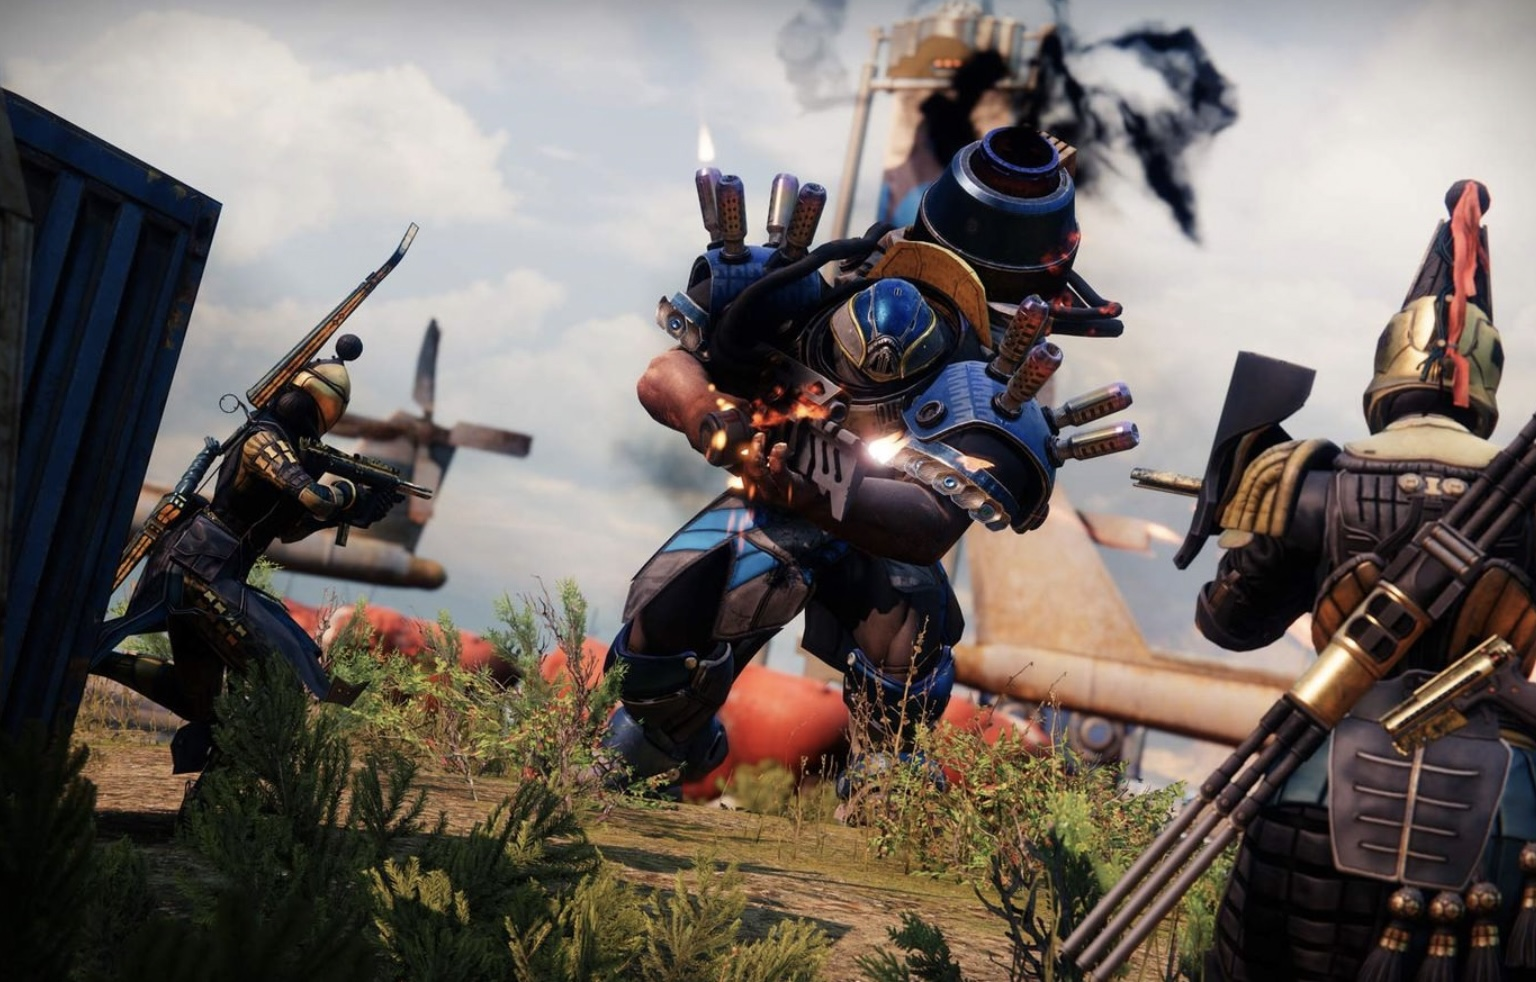 How To Get Cabal Gold in Destiny 2